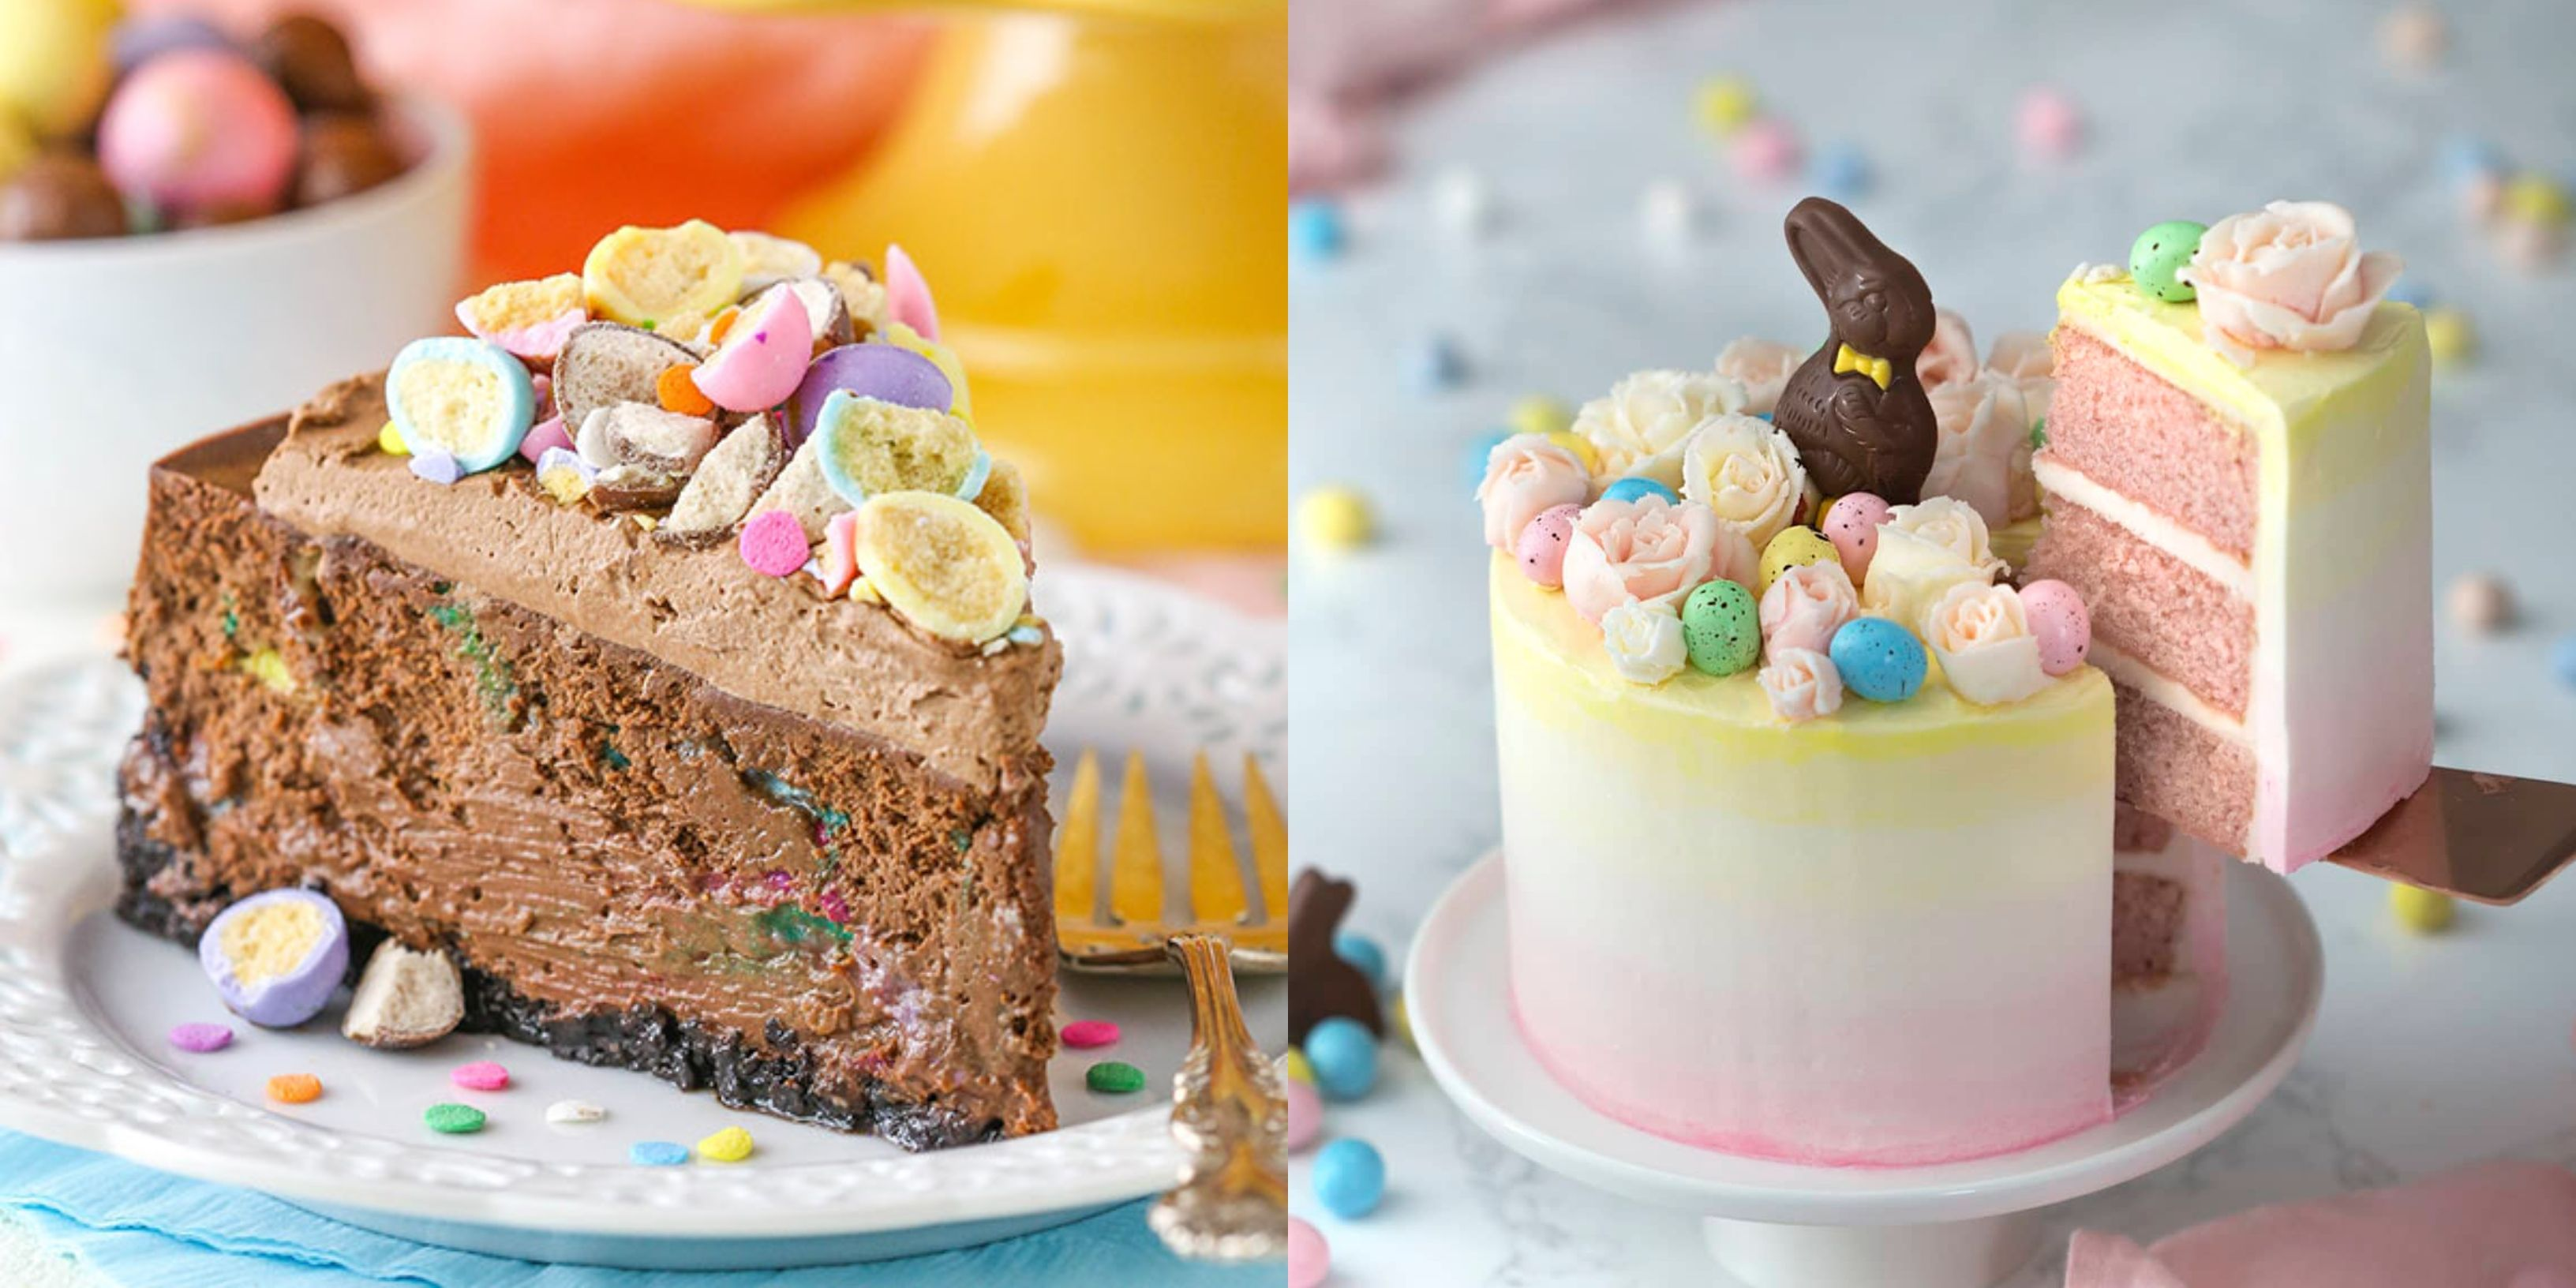 Baking Cakes 80 Easy Easter Cakes And Desserts Recipes Best Ideas For Easter